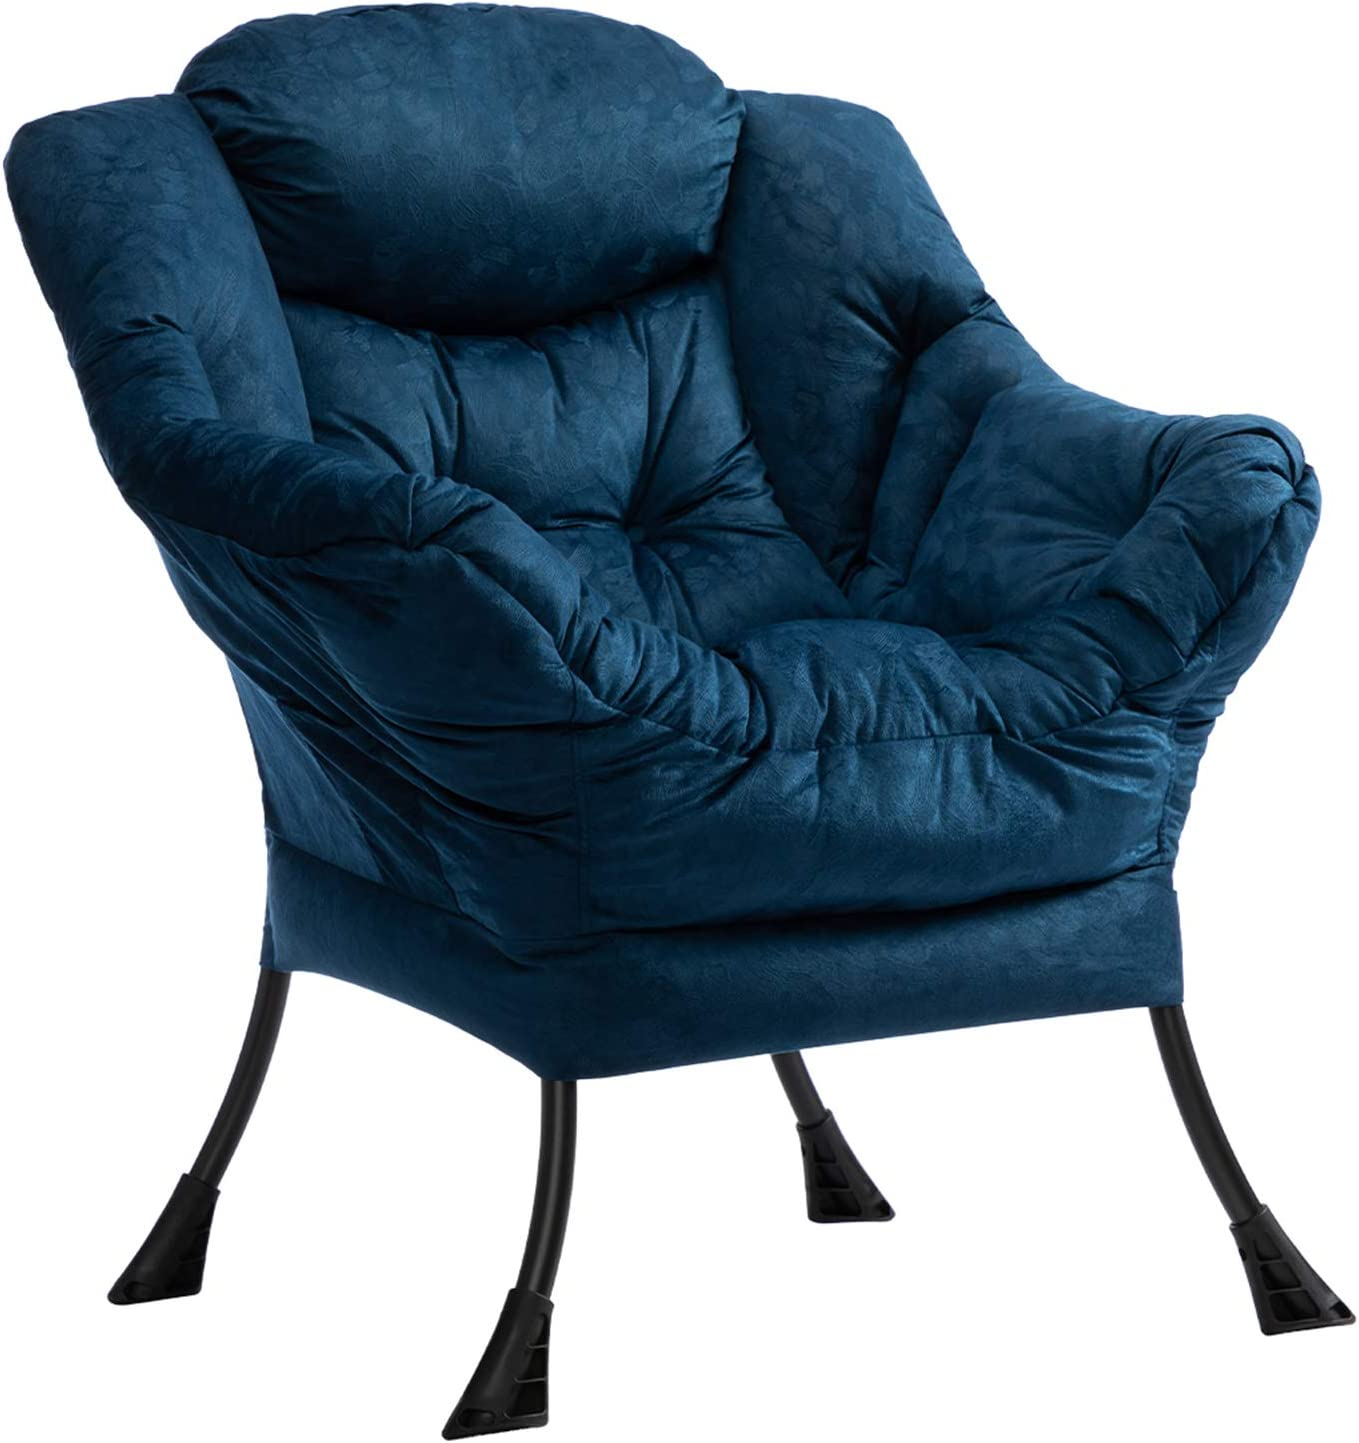 AbocoFur Modern Cotton Fabric Lazy Chair, Accent Contemporary Lounge Chair, Single Steel Frame Leisure Sofa Chair with Armrests and A Side Pocket, Thick Padded Back, Dark Blue